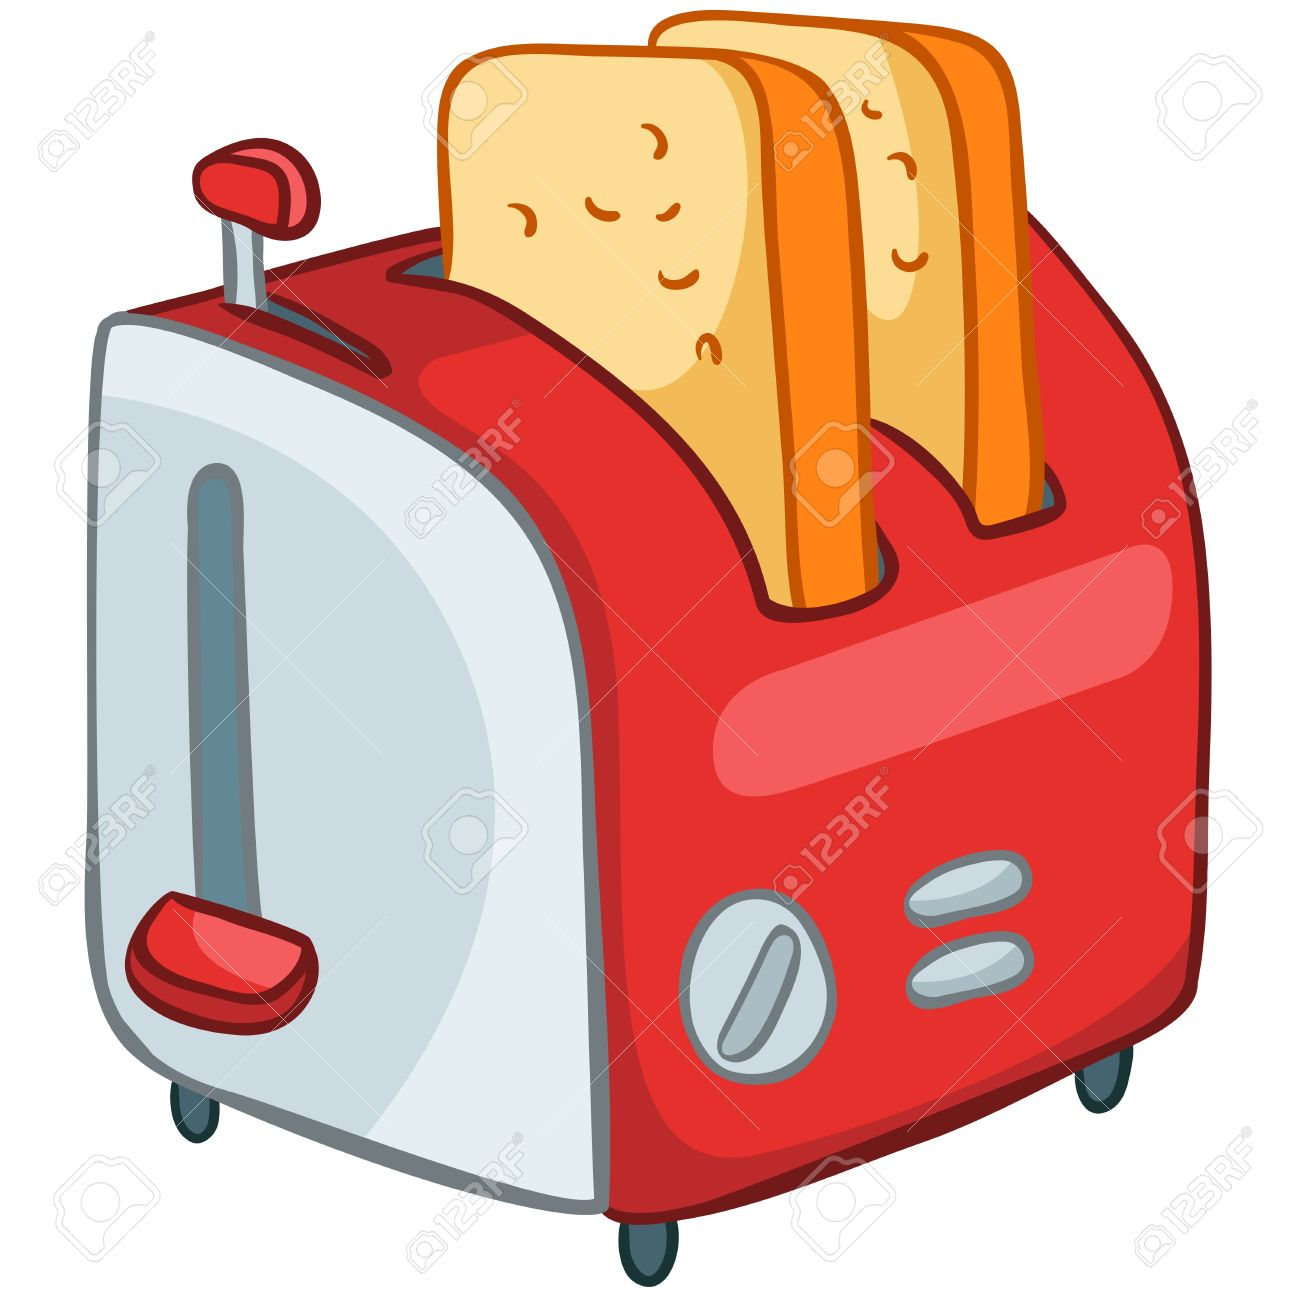 clip transparent Toaster clipart toster. Collection of free download.